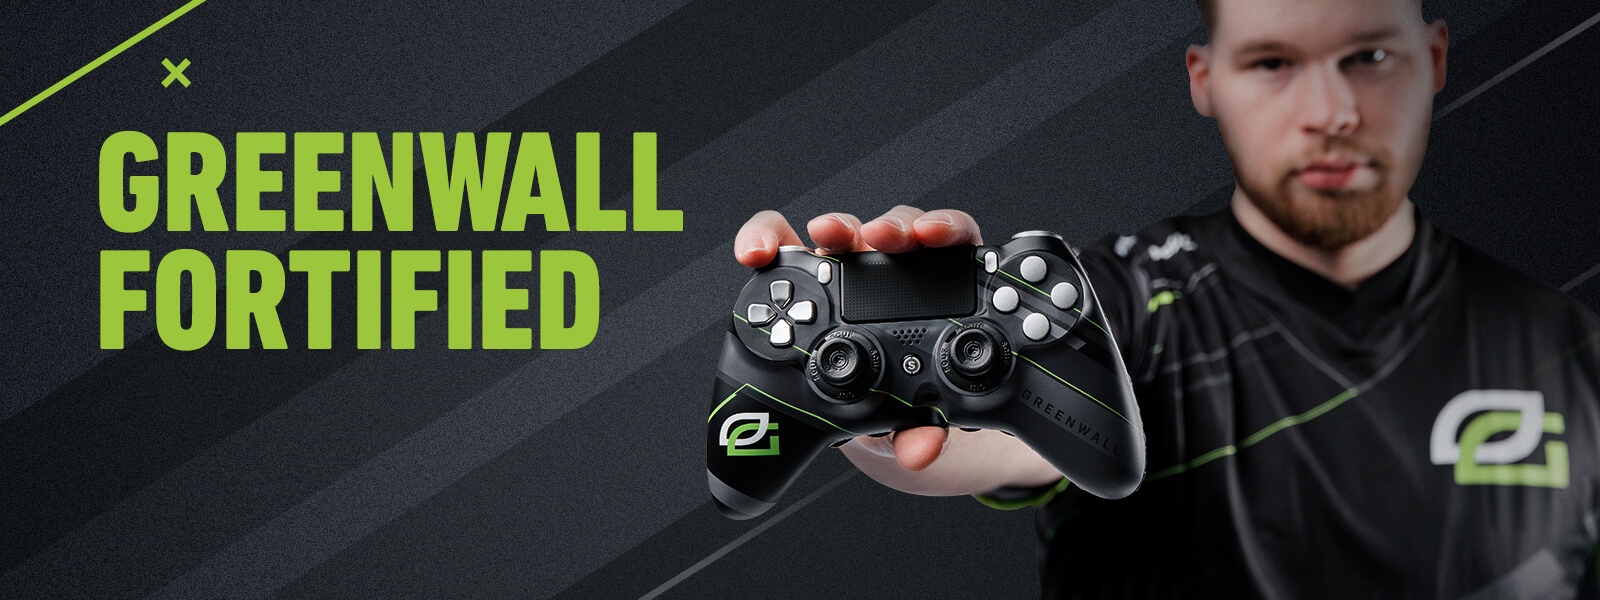 Optic Gaming - Greenwall Fortified